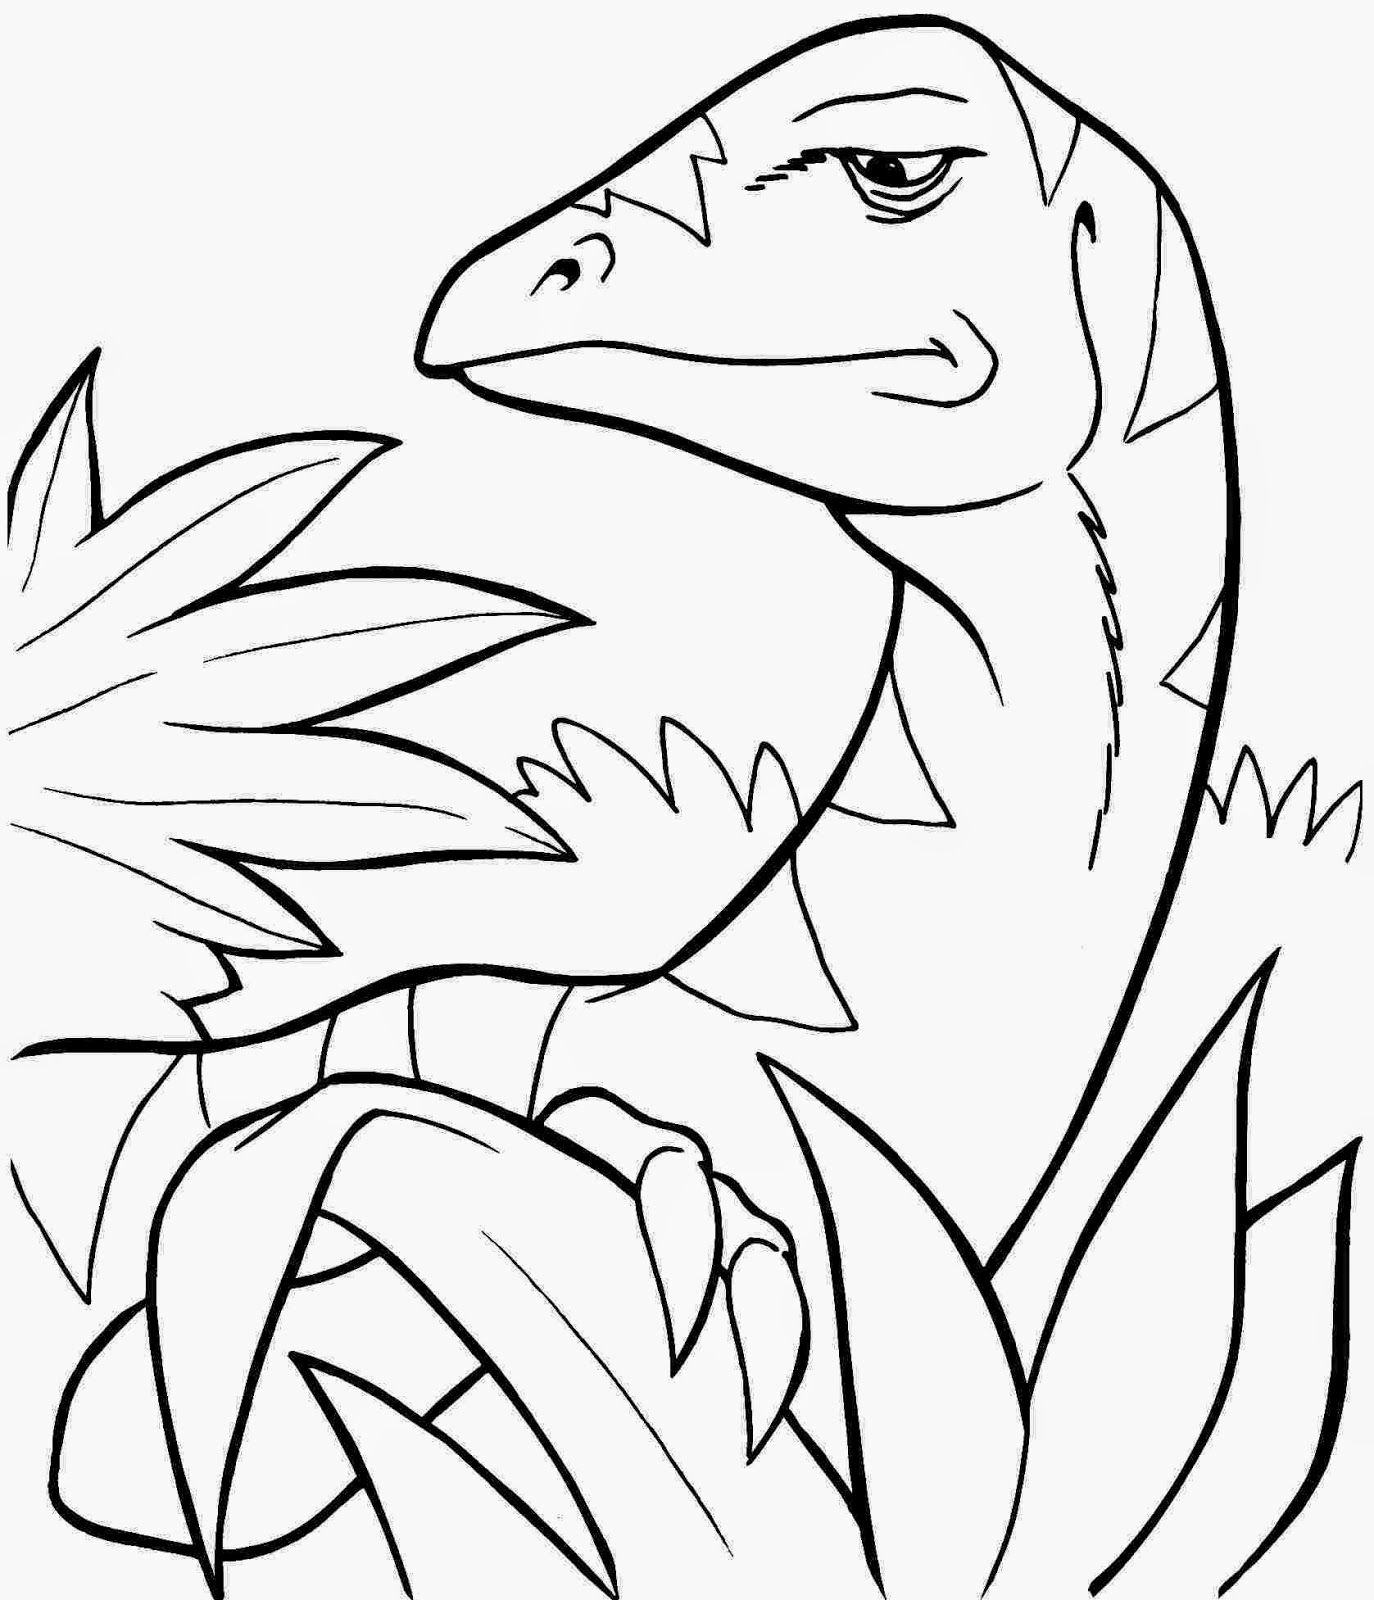 dinosaur colouring pictures to print dinosaur printable coloring pages free coloring home dinosaur to pictures print colouring